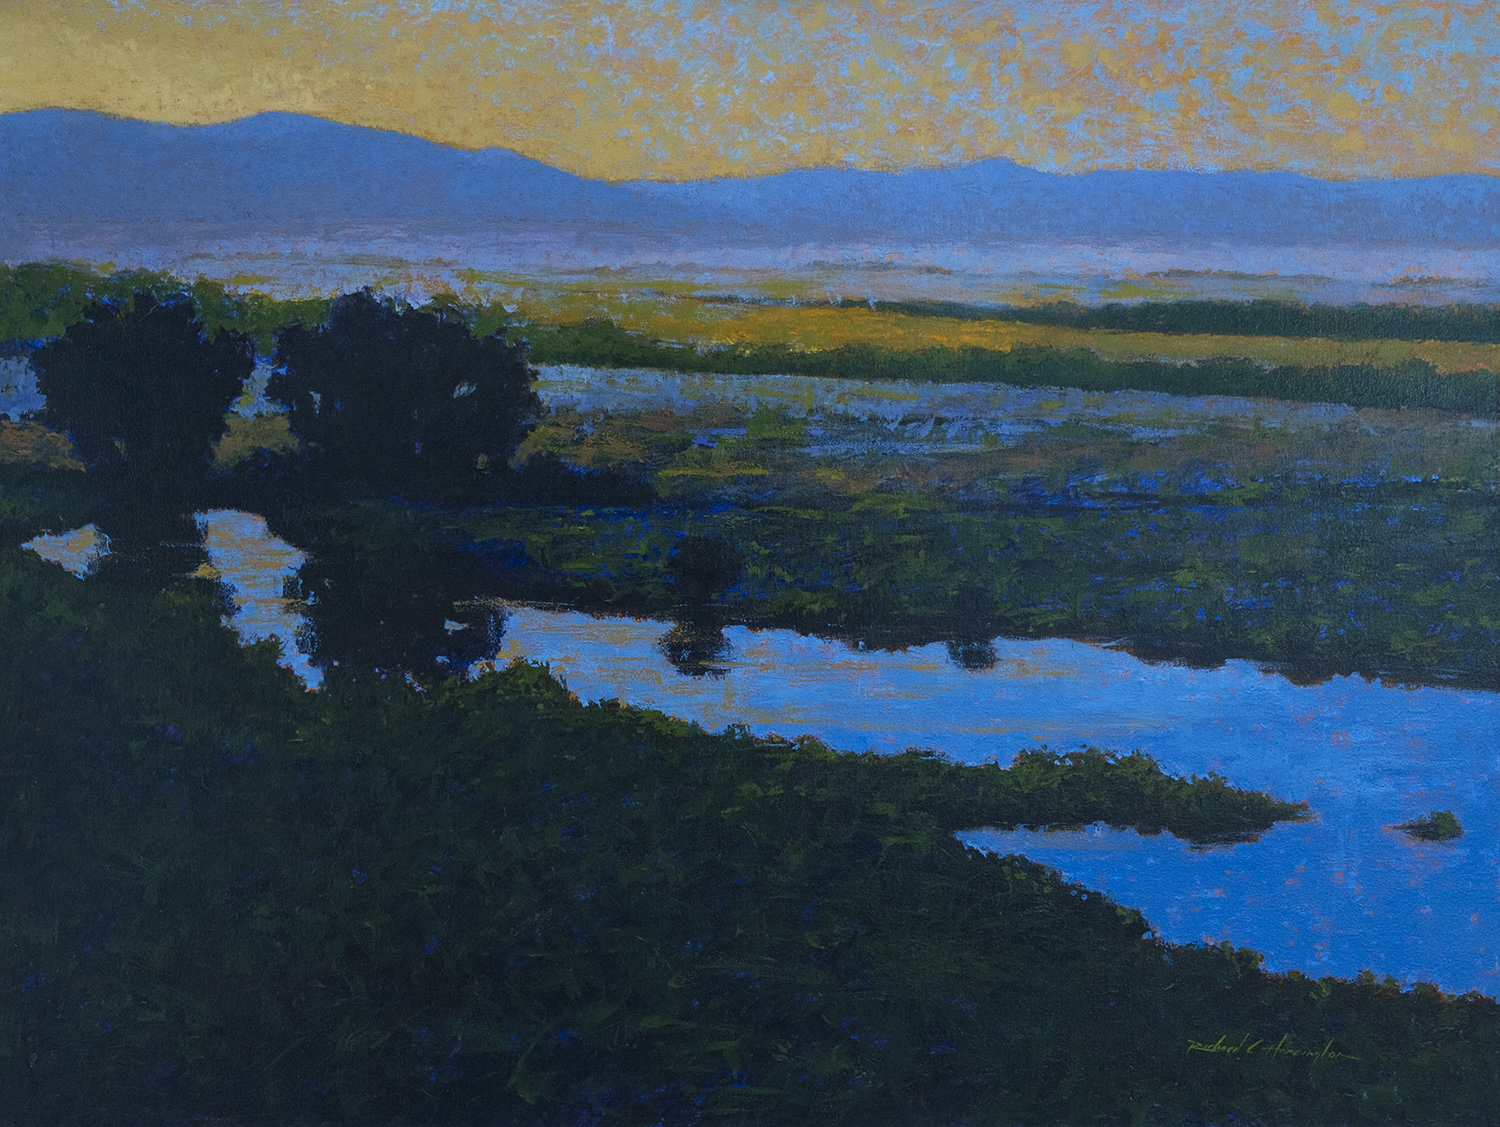 Silver Creek V, oil on canvas, 42 x 56 inches, $8500.00. Shipping to be determined.